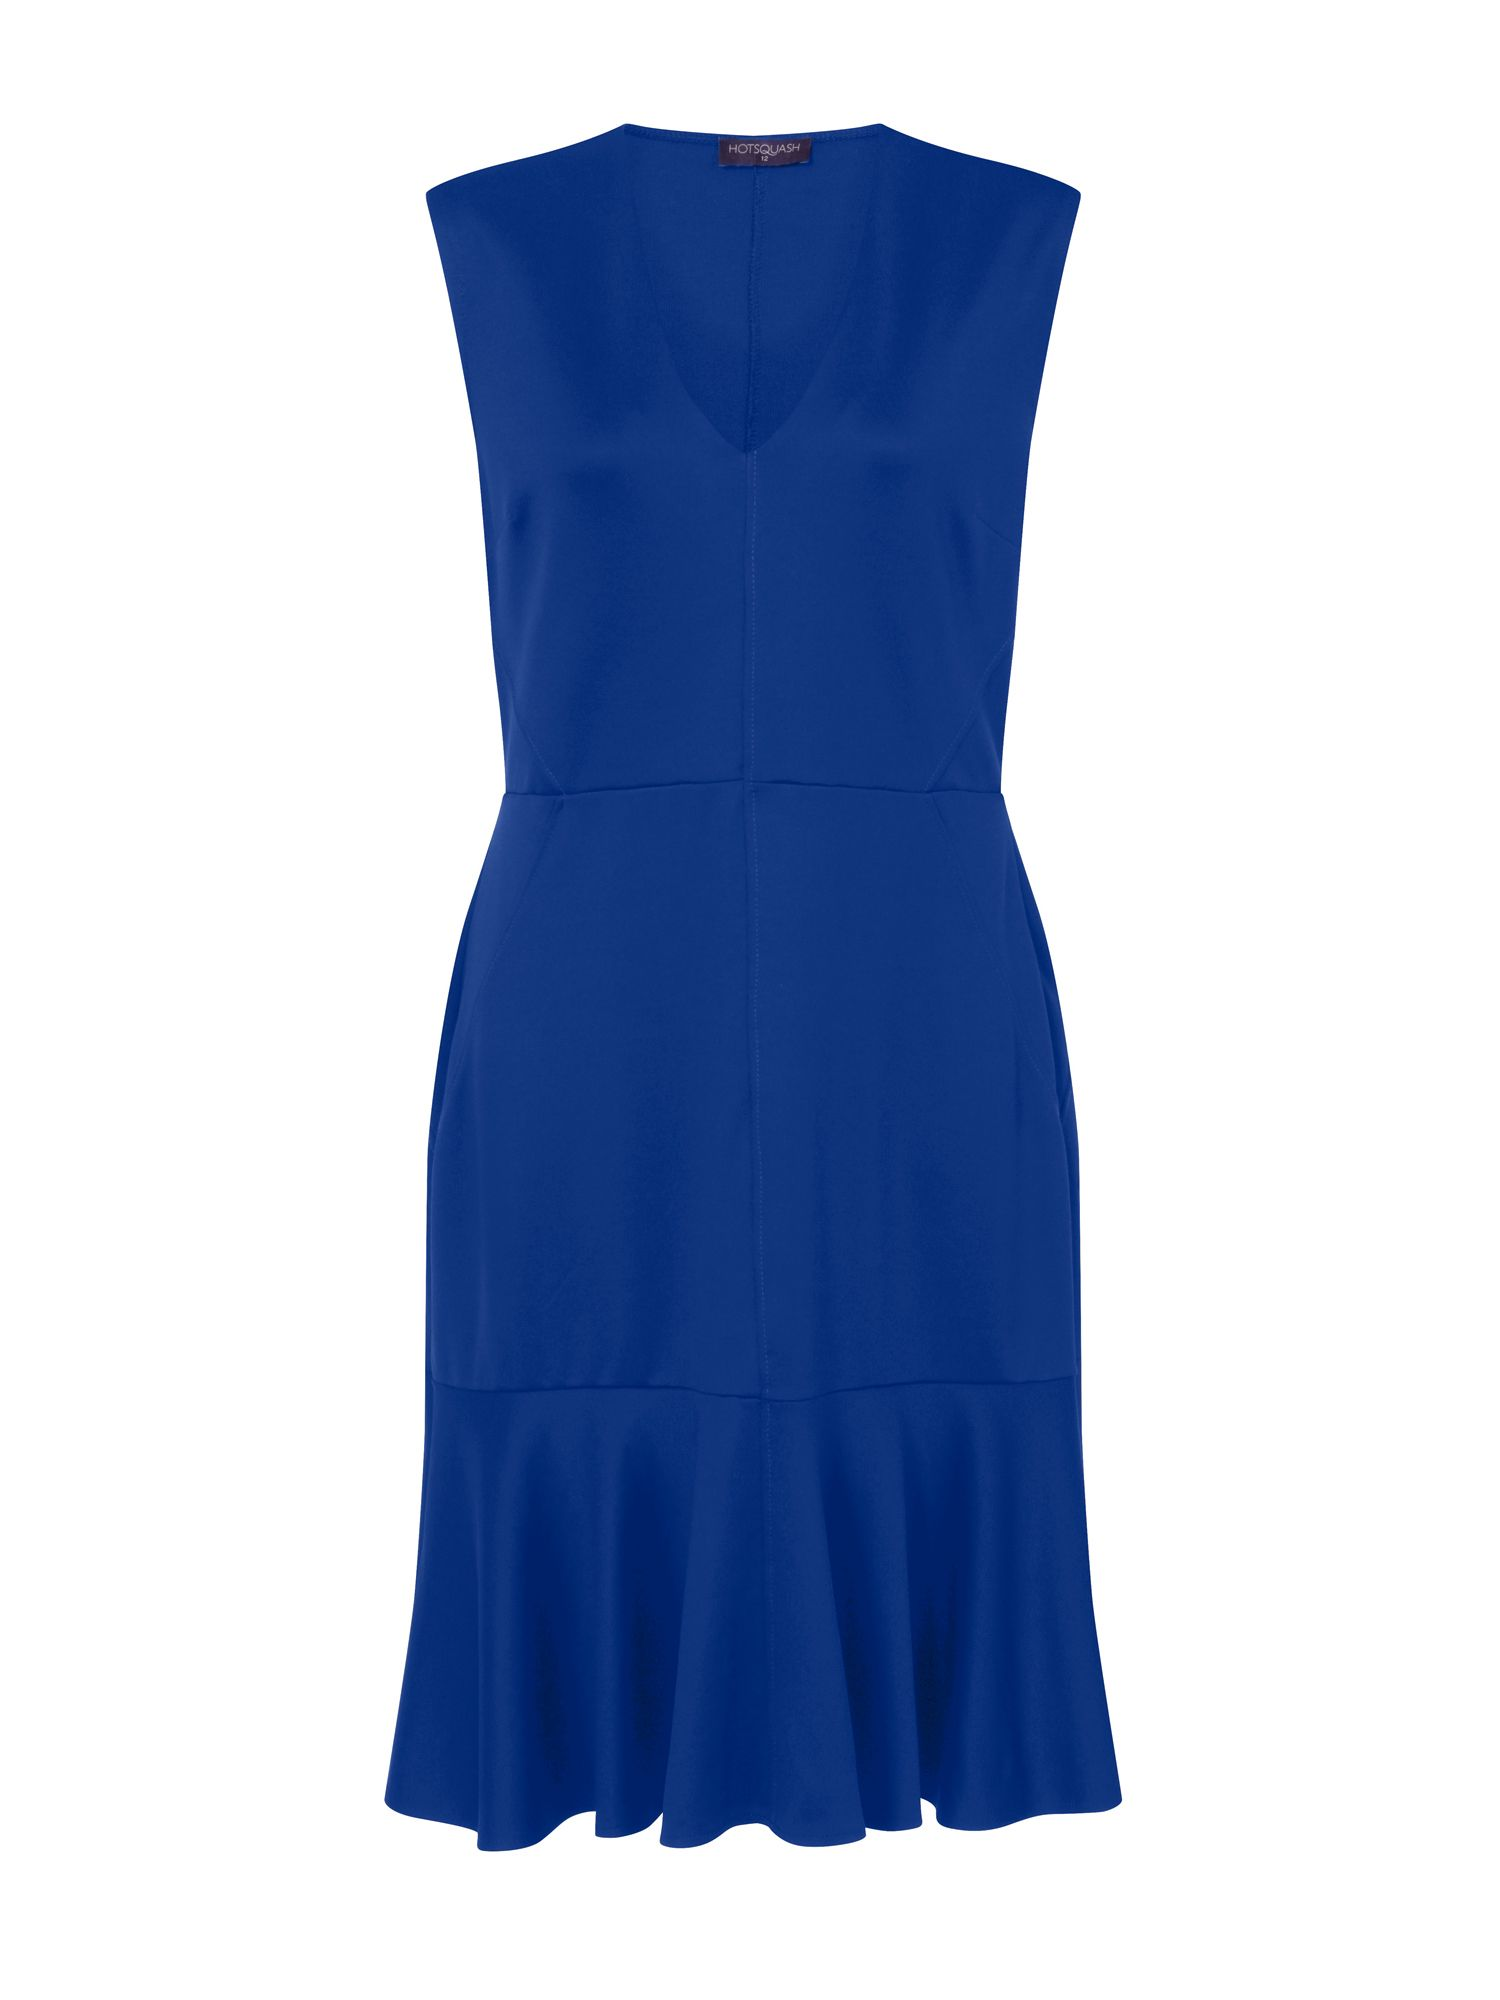 HotSquash Drop Waist Ponte Dress in Clever Fabric, Blue